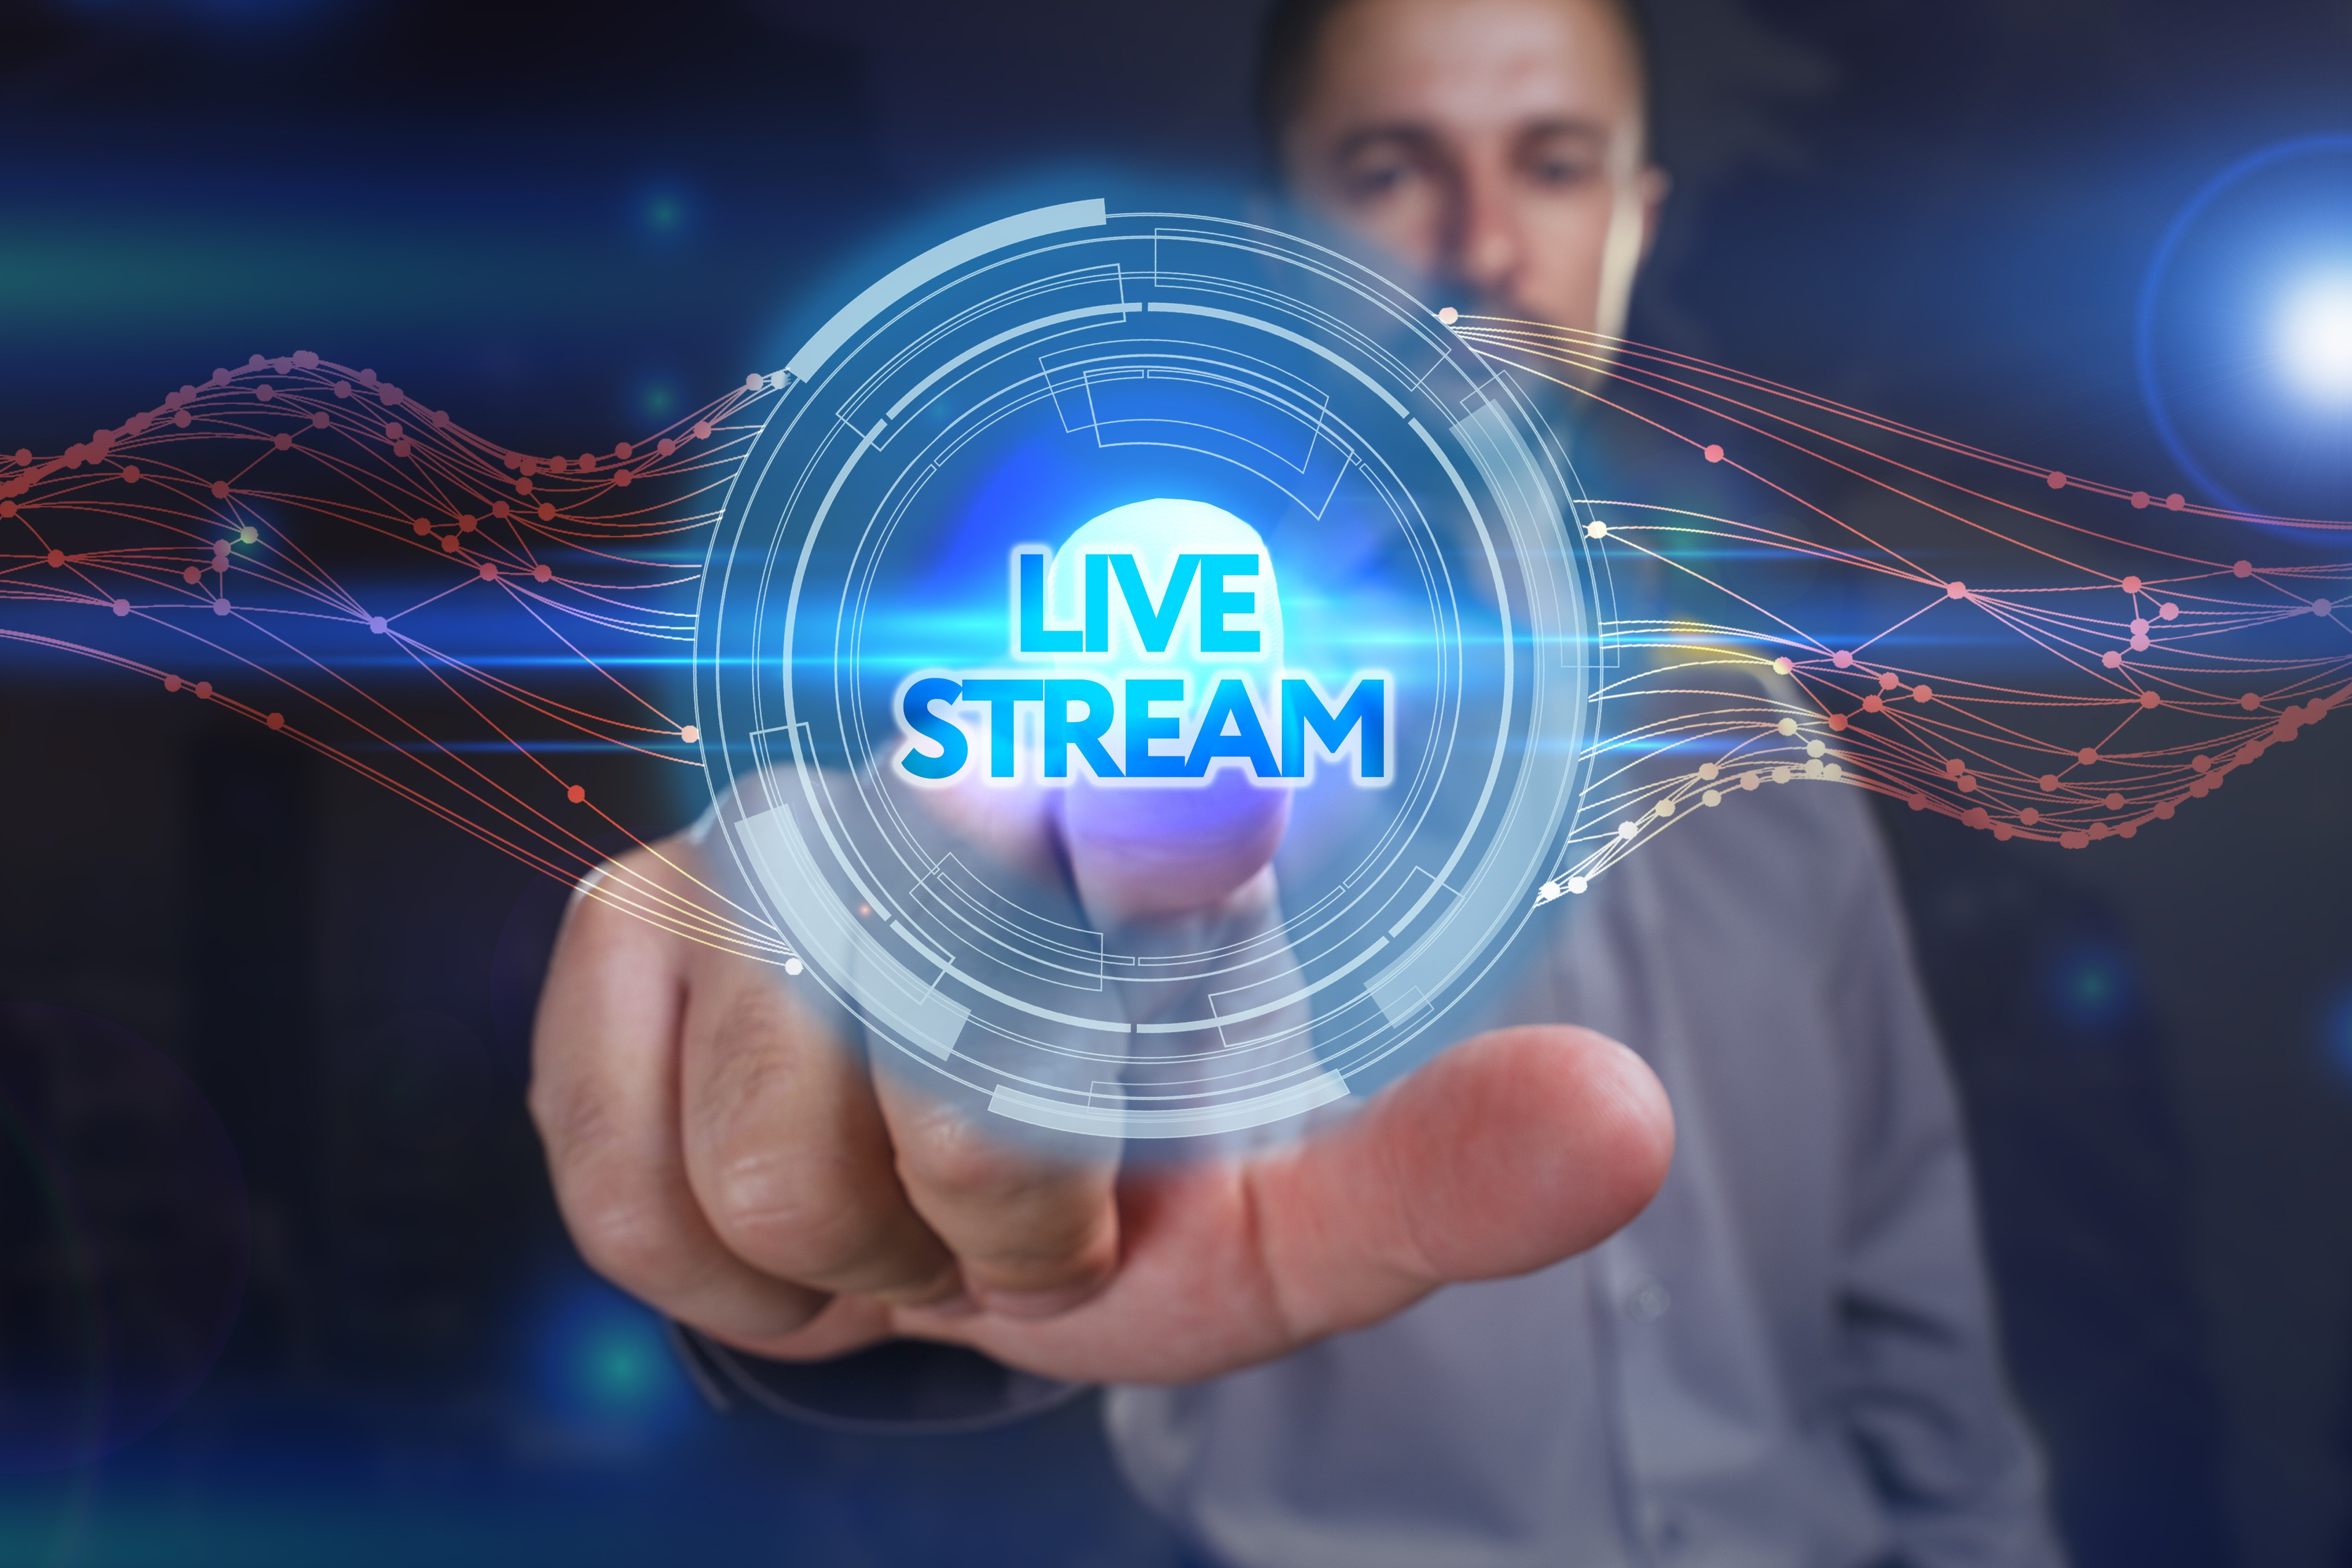 Live; Video; Streaming; Online; Marketing